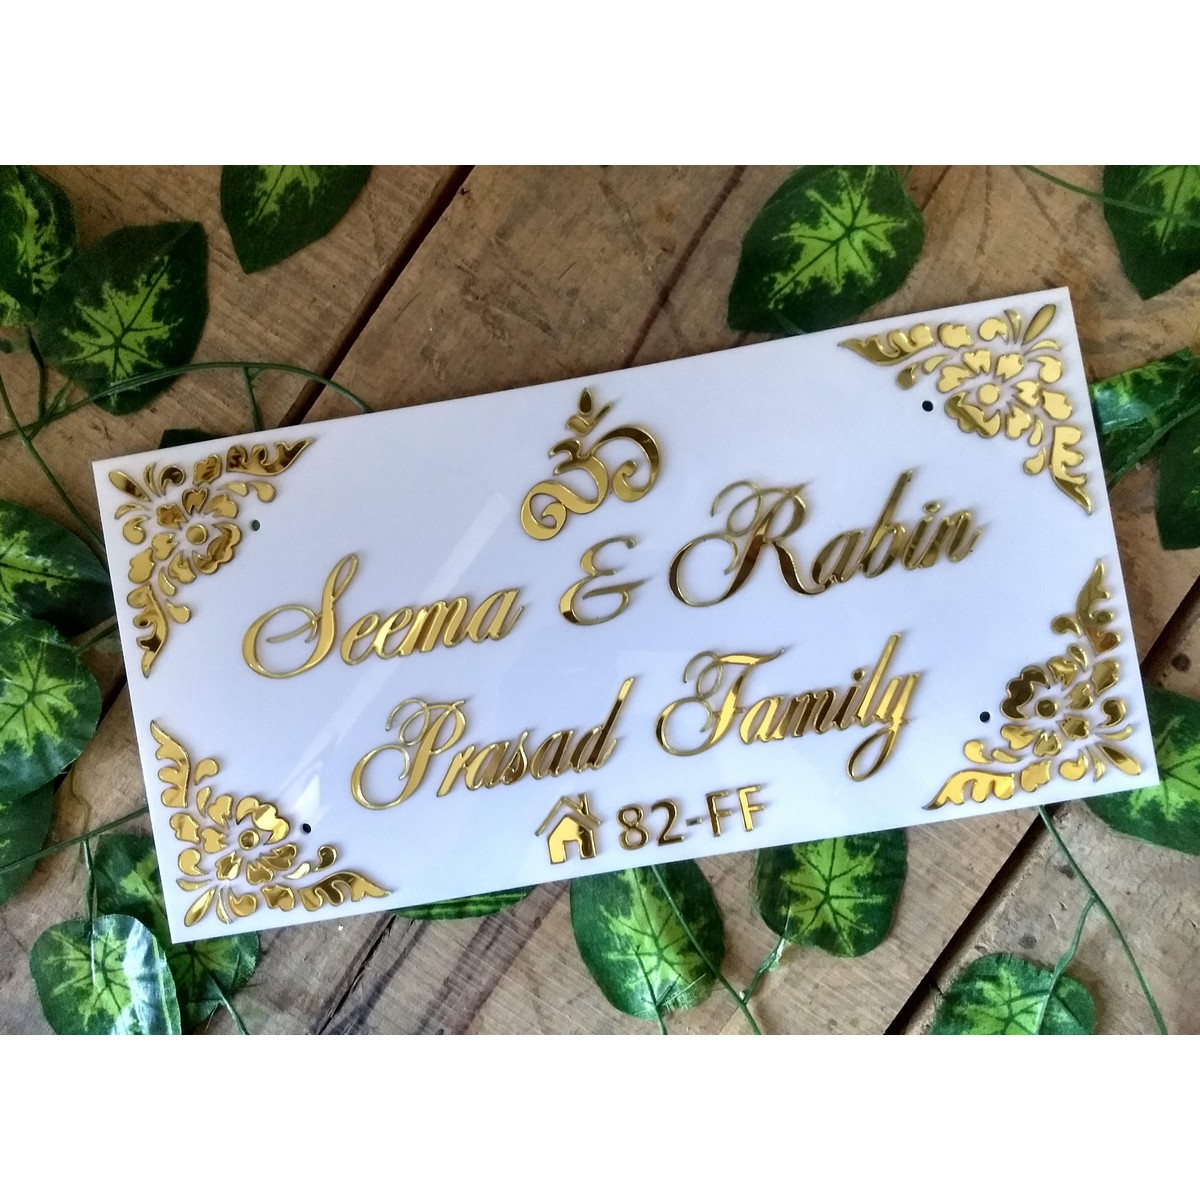 House Name Plate  Acrylic  Premium Collection  House Name Plate  Acrylic  Premium Collection 3